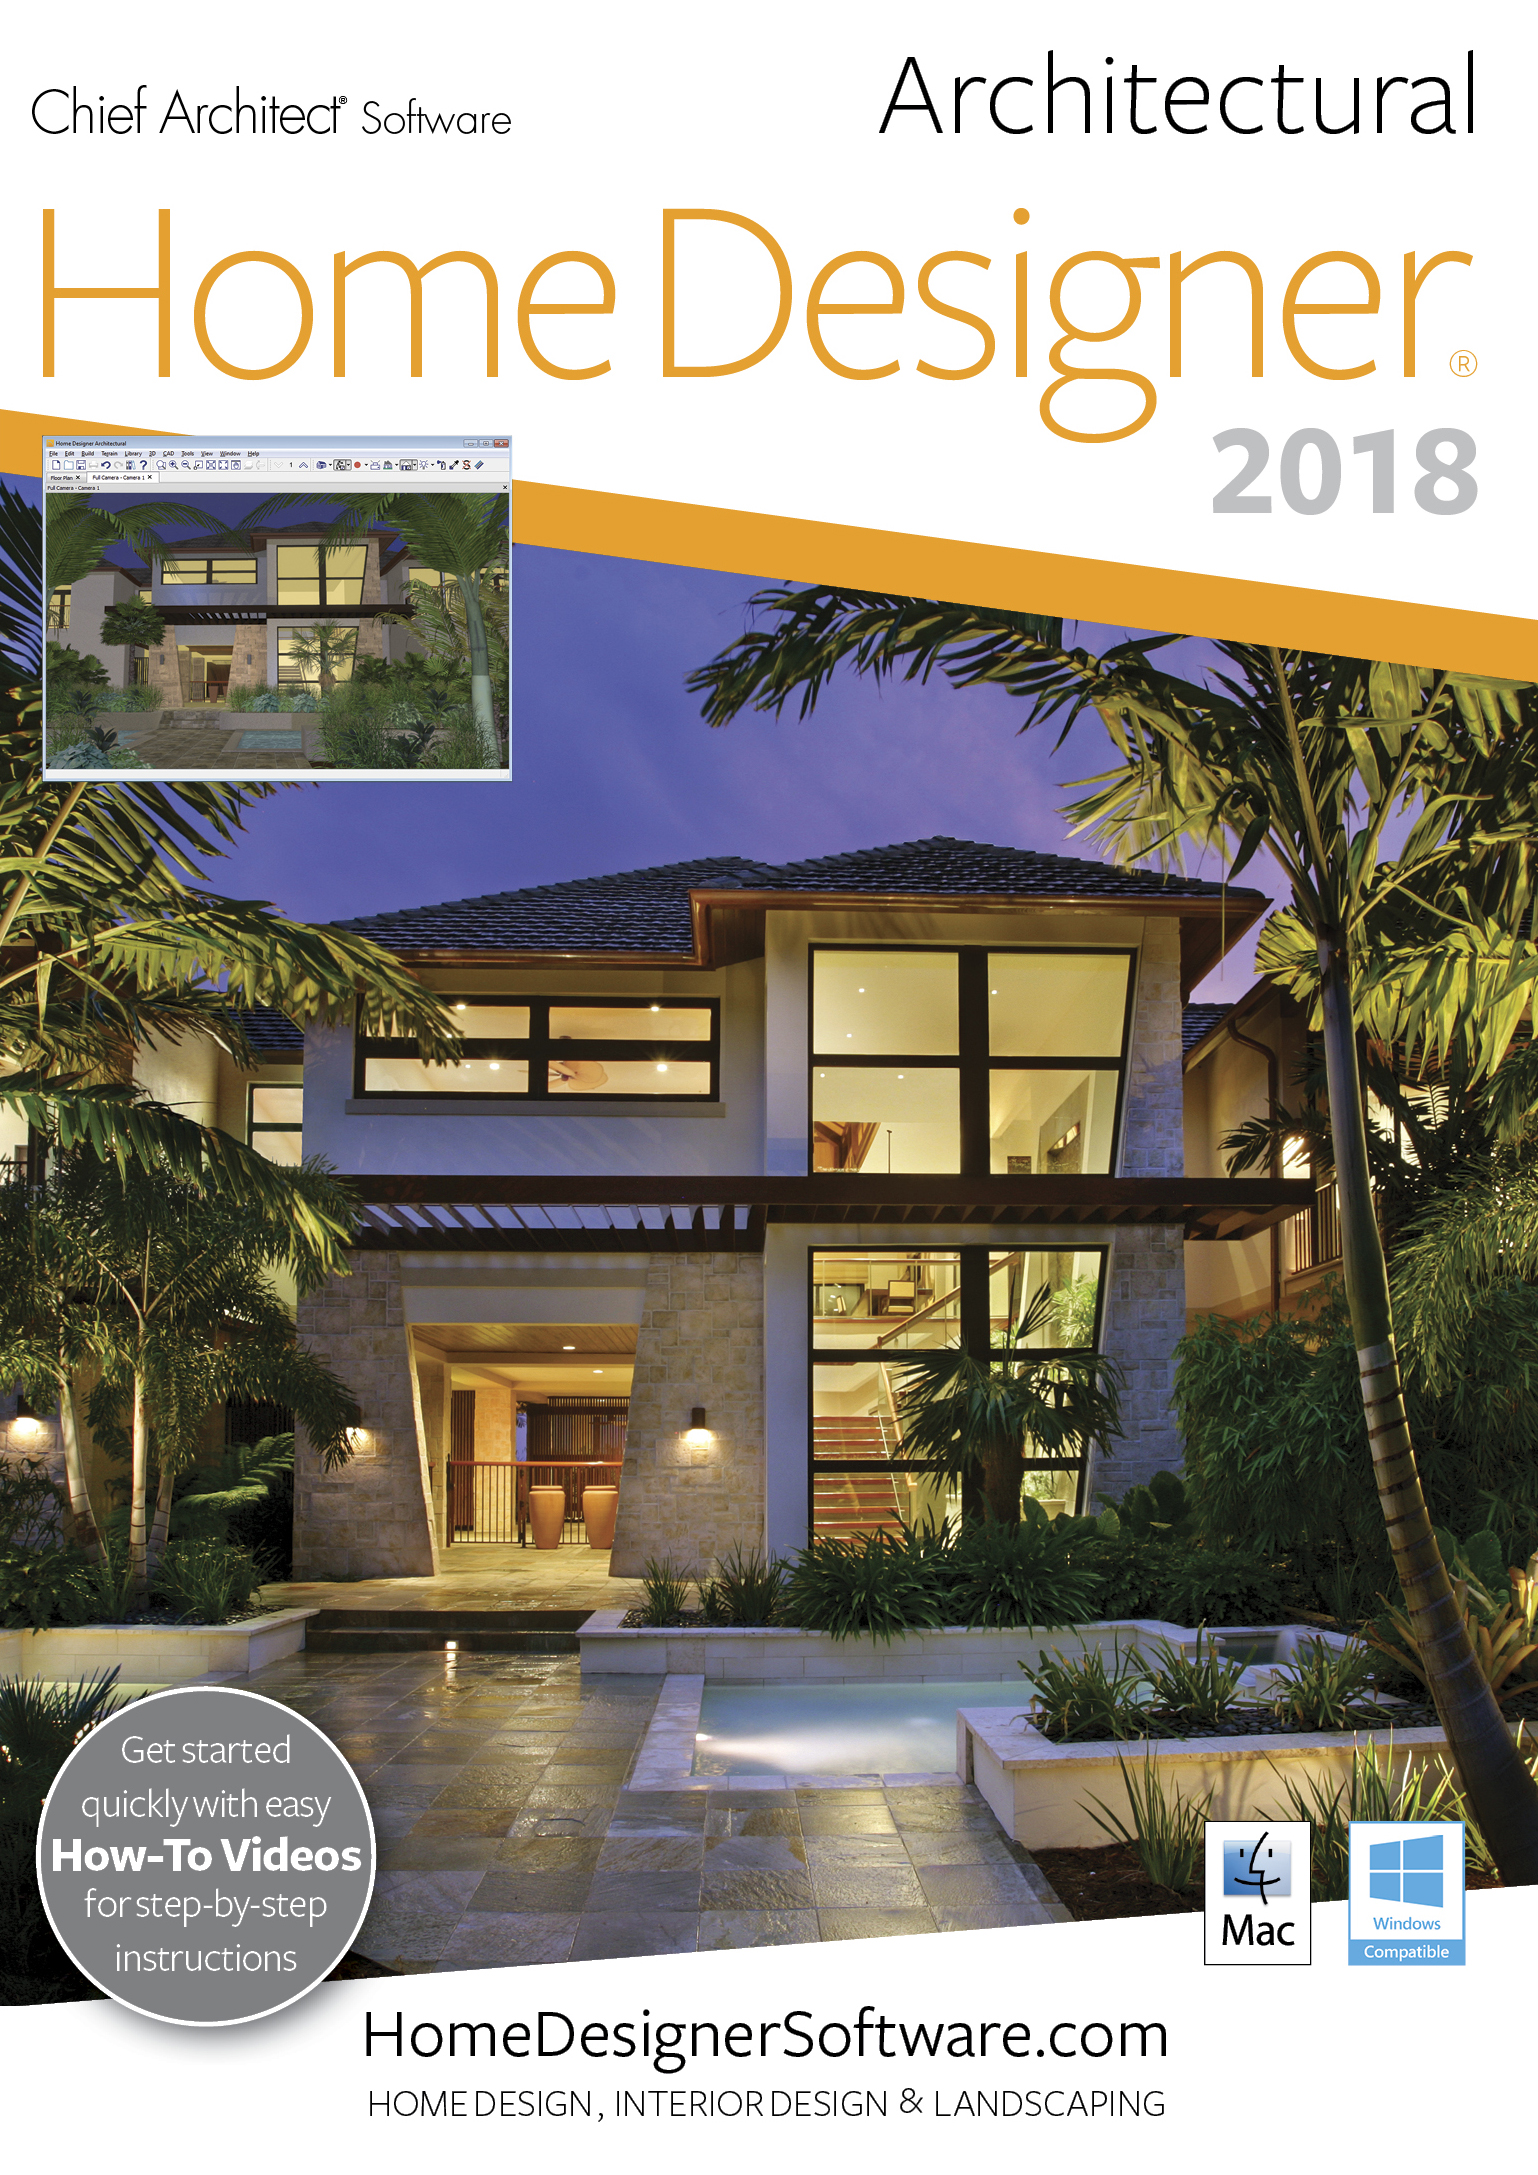 amazoncom home designer architectural 2018 mac download download software - Architect Home Designer